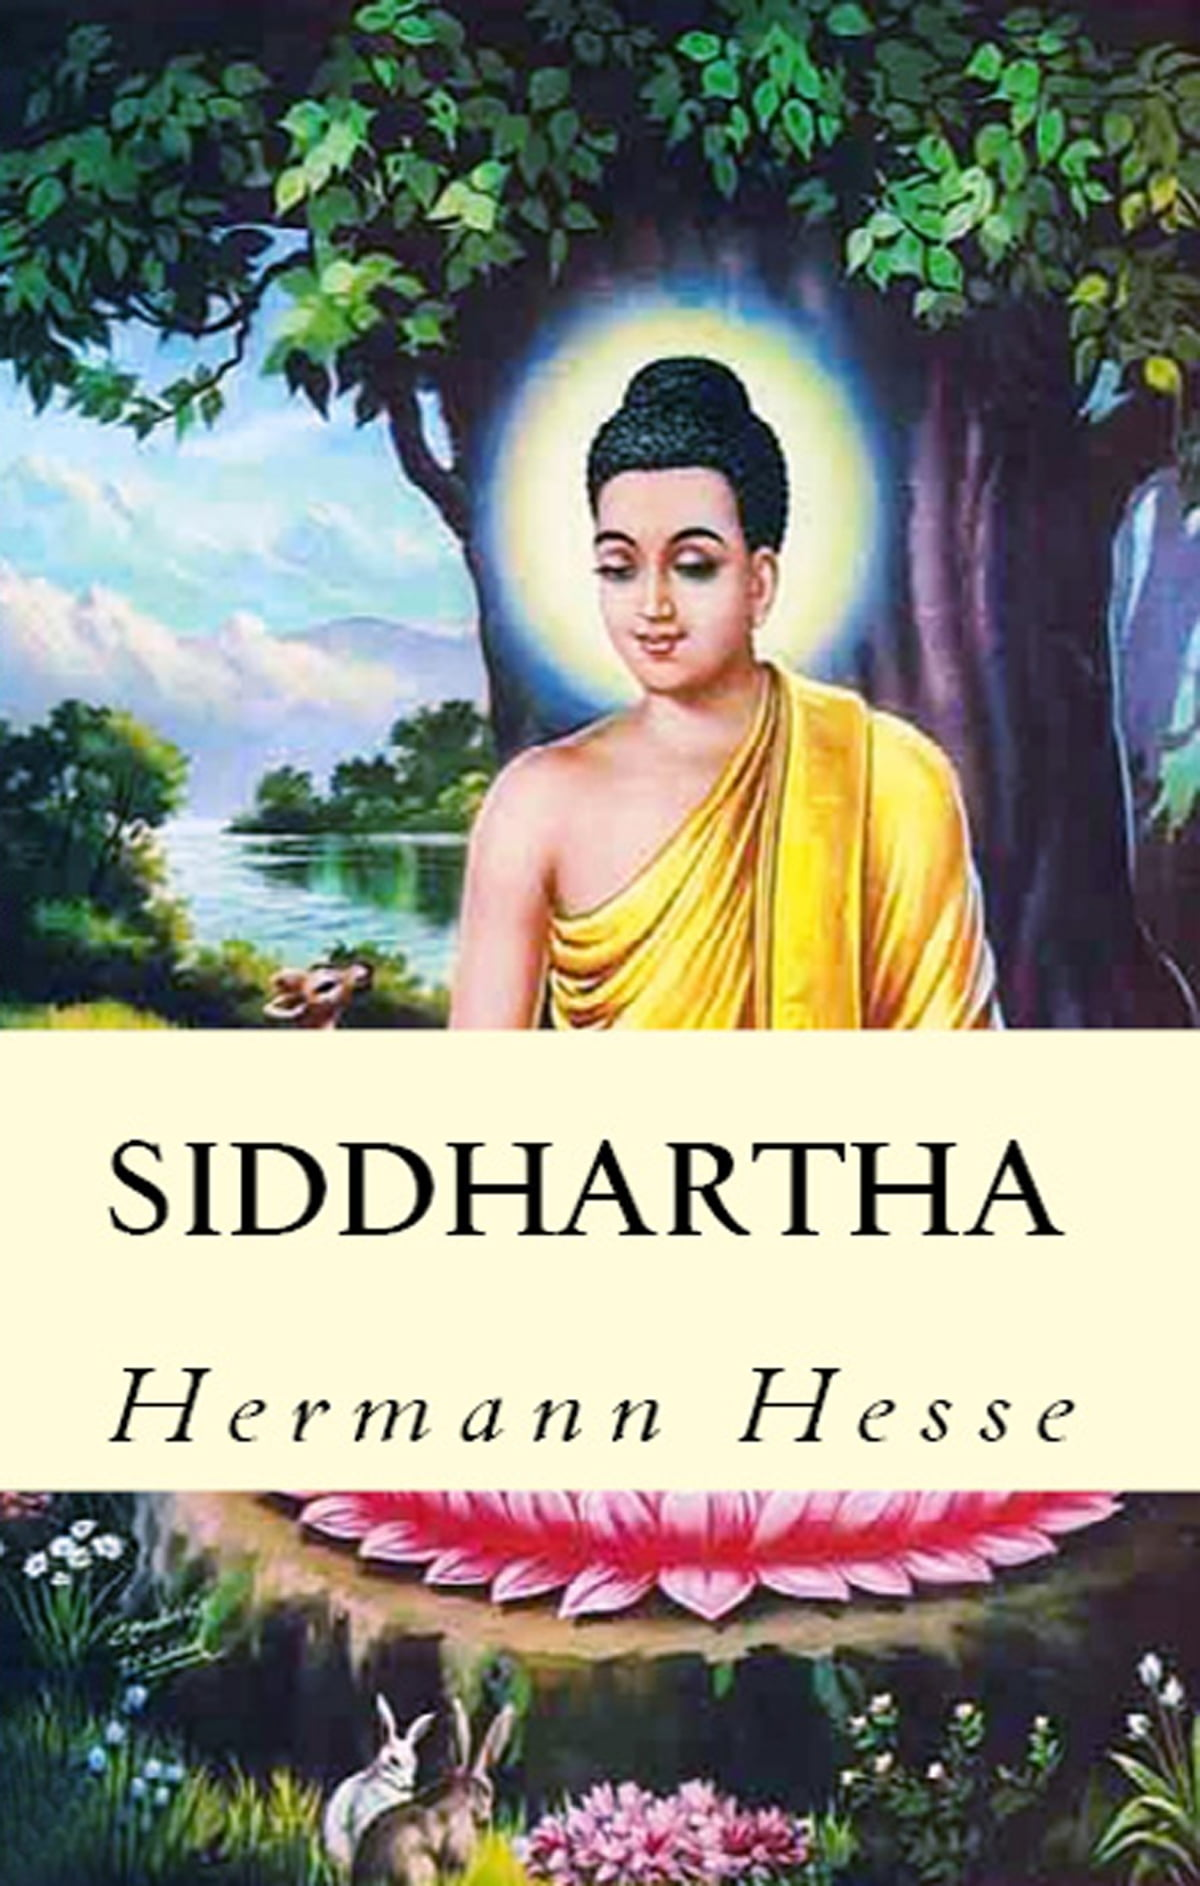 Herman Hesse Shakespeare Siddhartha Cliff Notes Wwwmiifotoscom